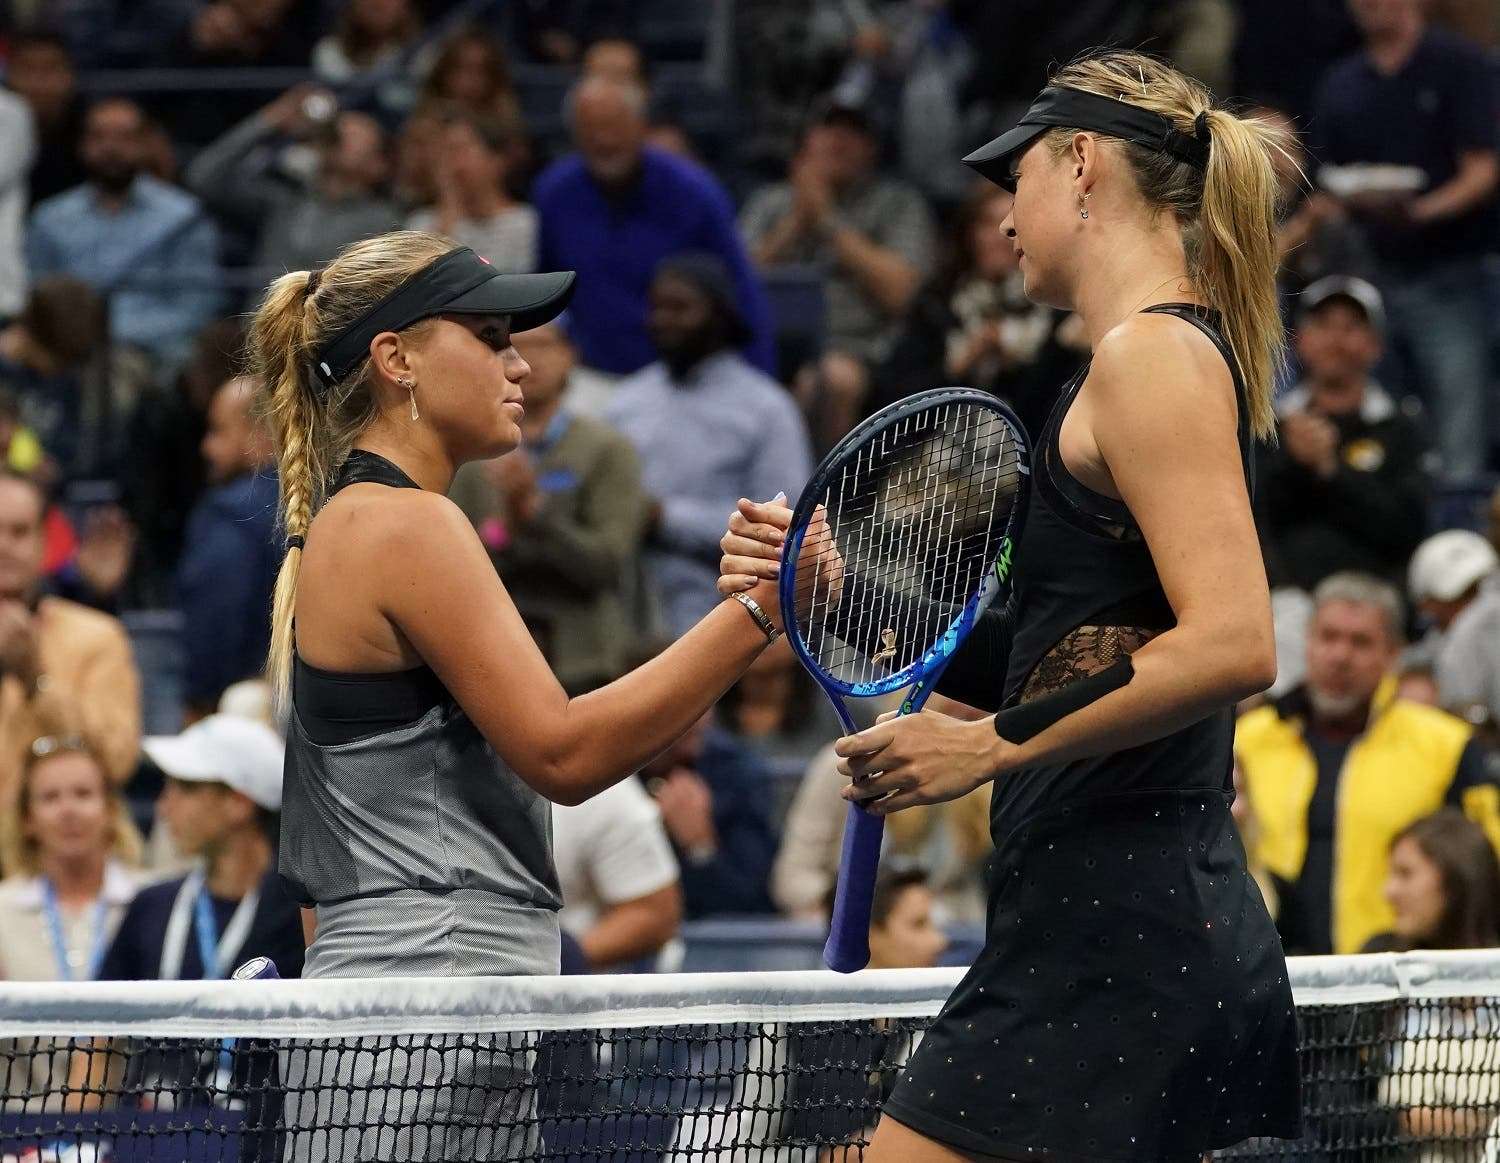 Maria Sharapova of Russia shakes hands with Sofia Kenin of the USA in Ashe Stadium after their match. (Robert Deutsch-USA TODAY Sports/Reuters)